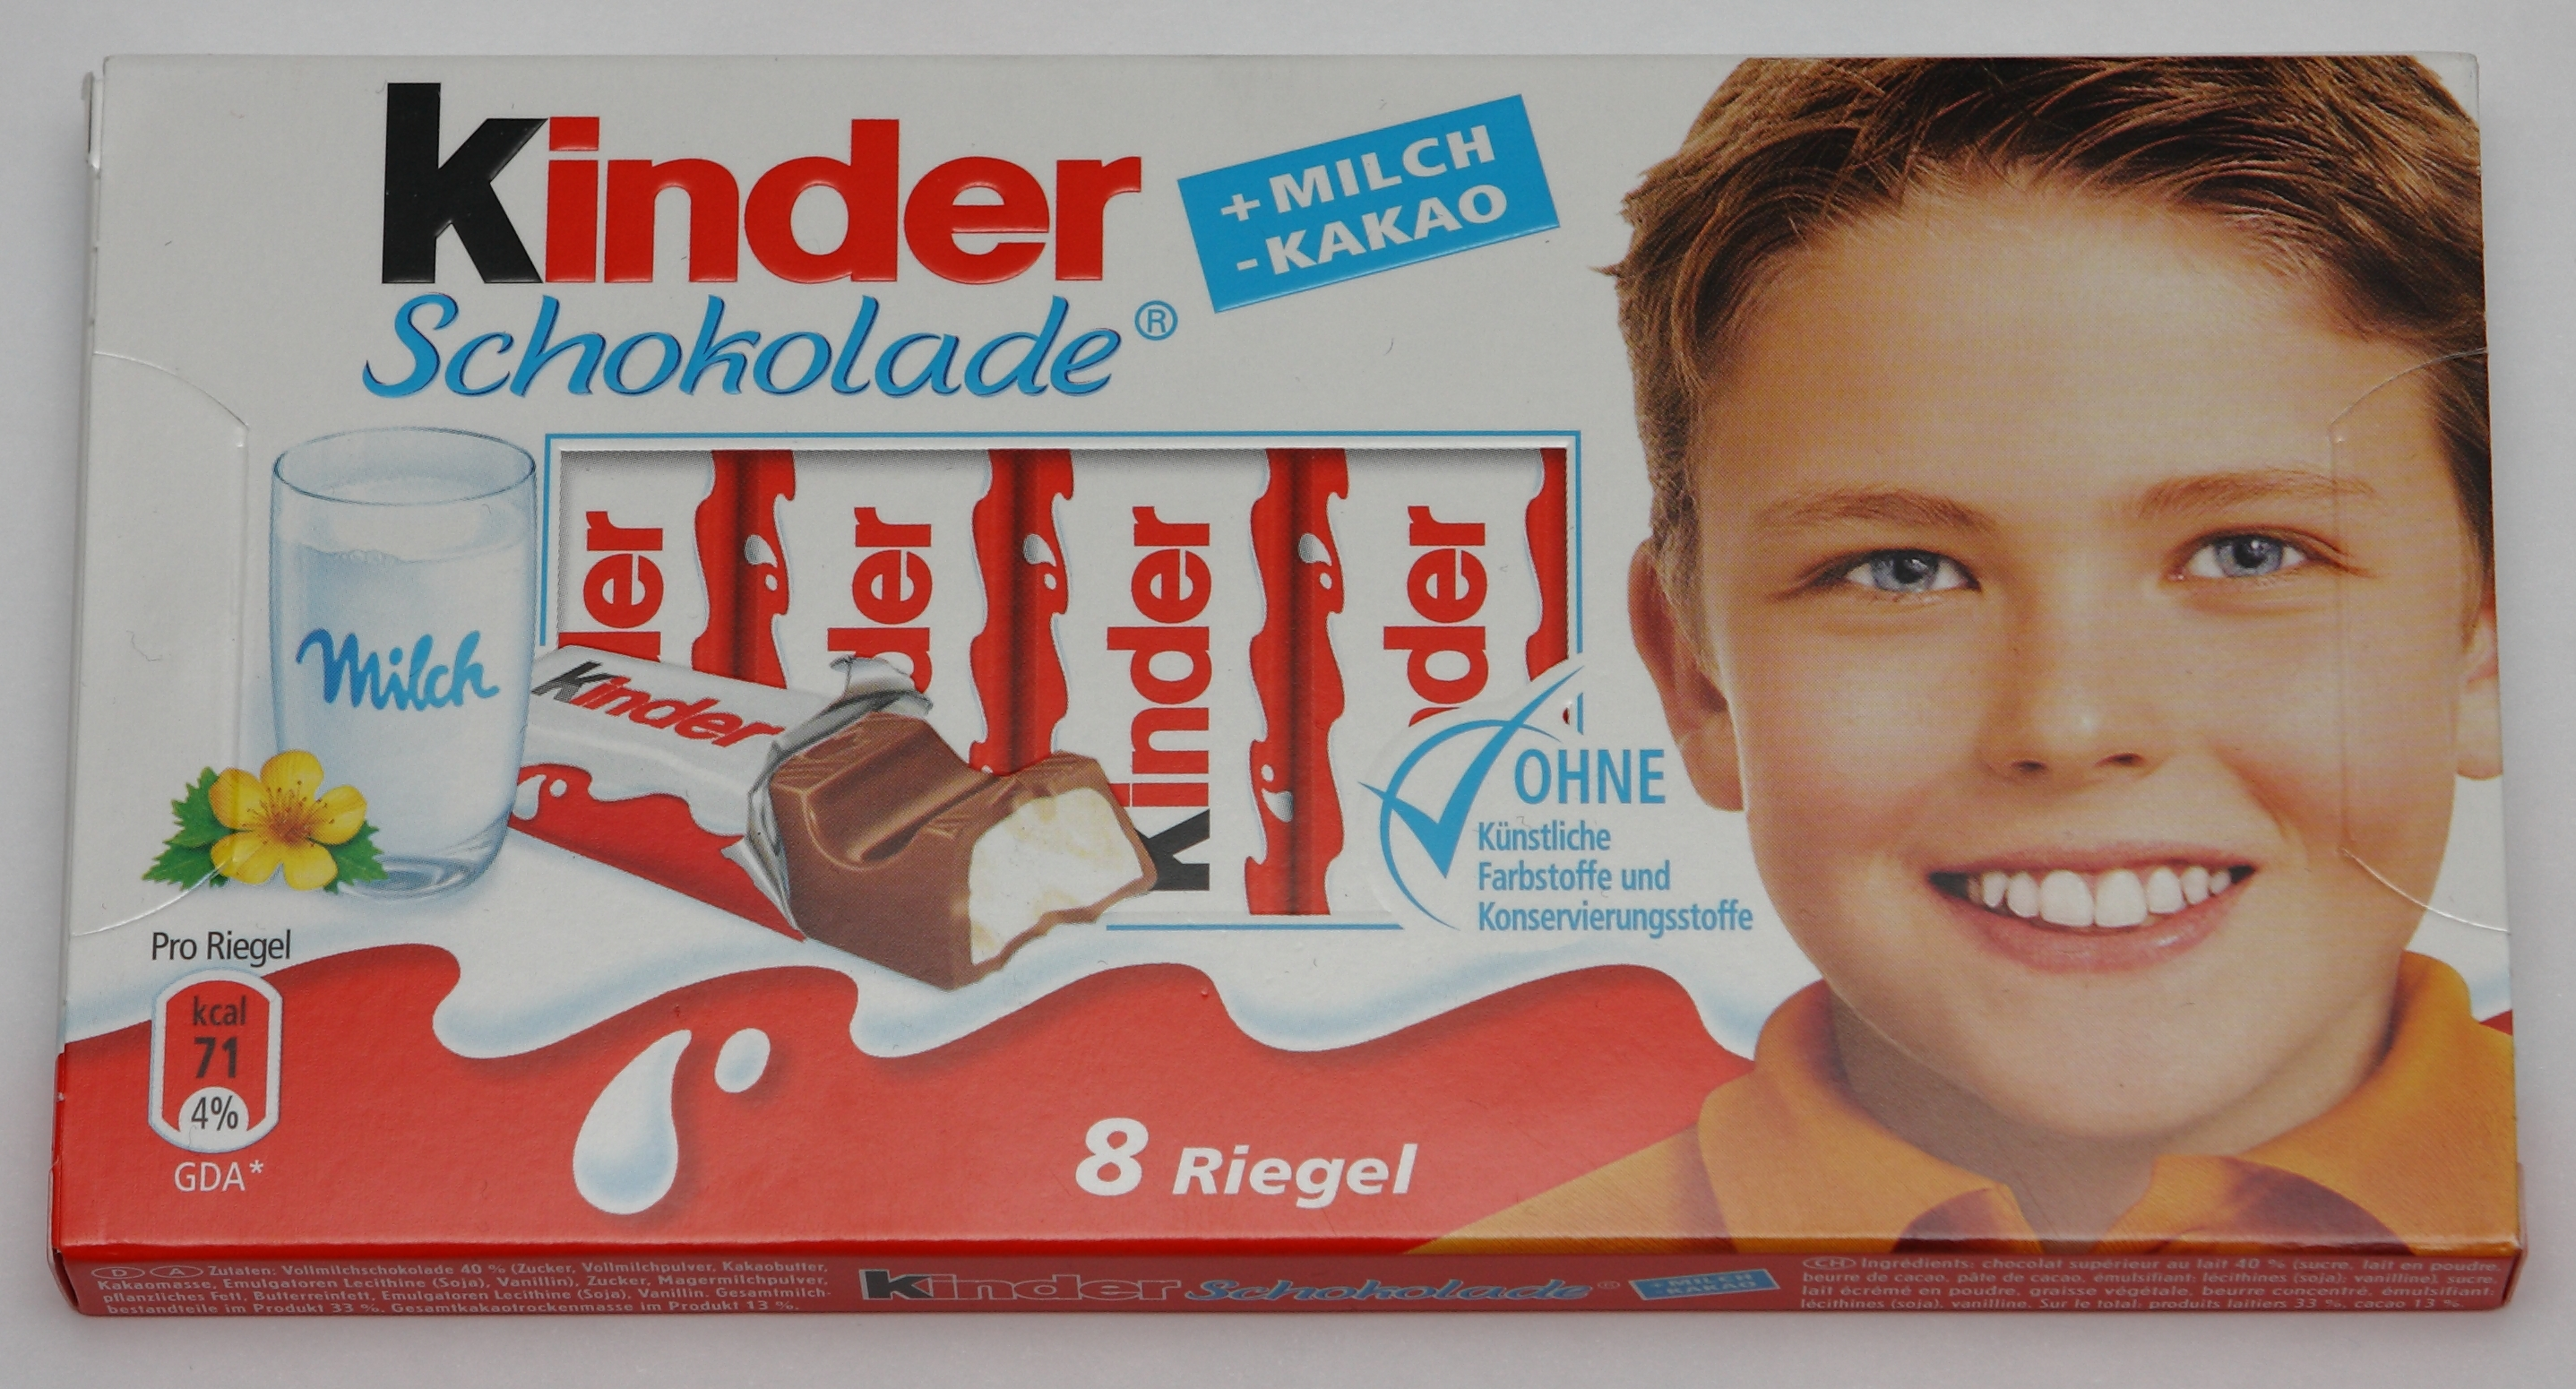 Kinder chocolate kinder the bar 9990 youssef chocolate for online